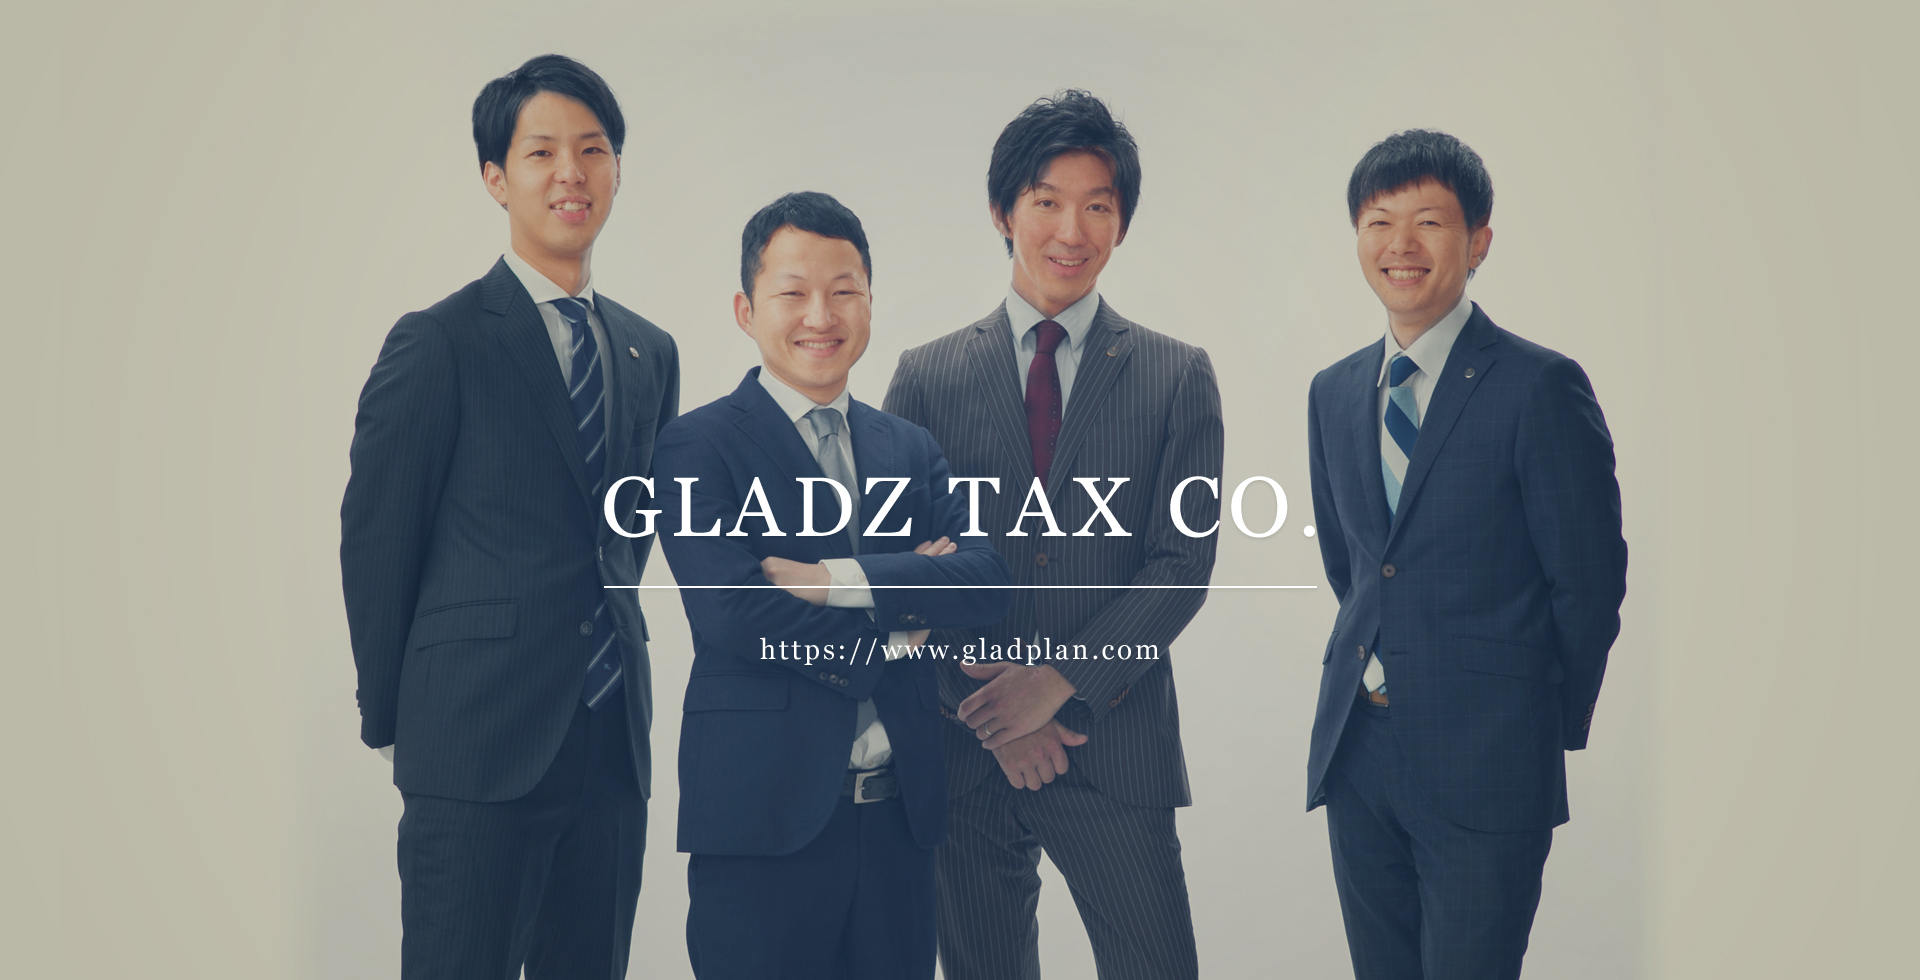 GLADZ TAX CO. https://www.gladplan.com